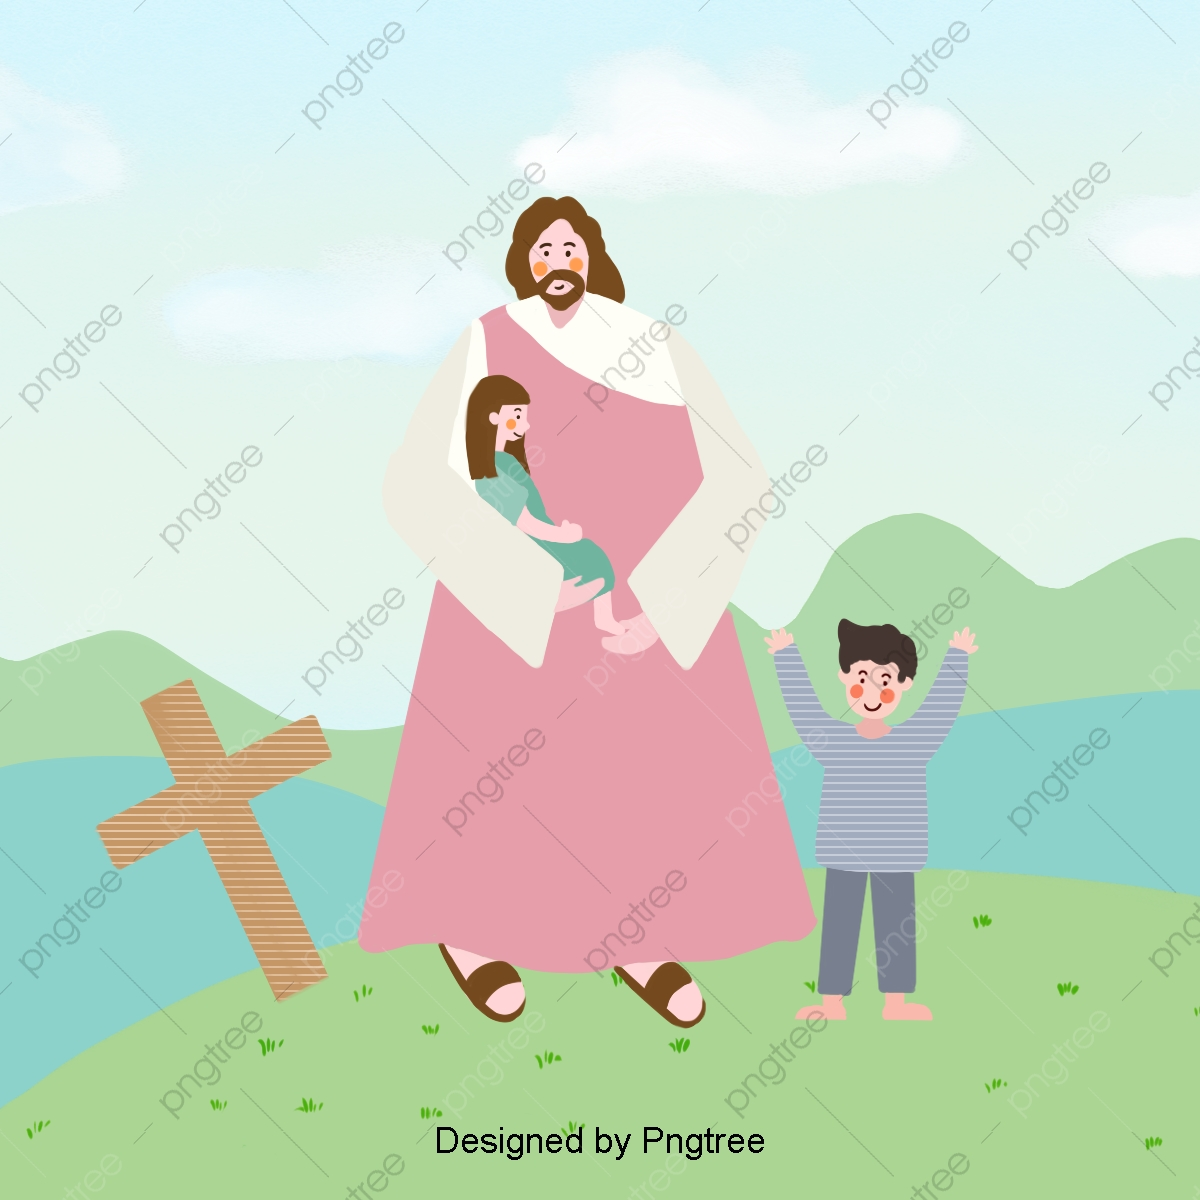 Embrace The Child Jesus Jesus Clipart Child Fr Png Transparent Clipart Image And Psd File For Free Download